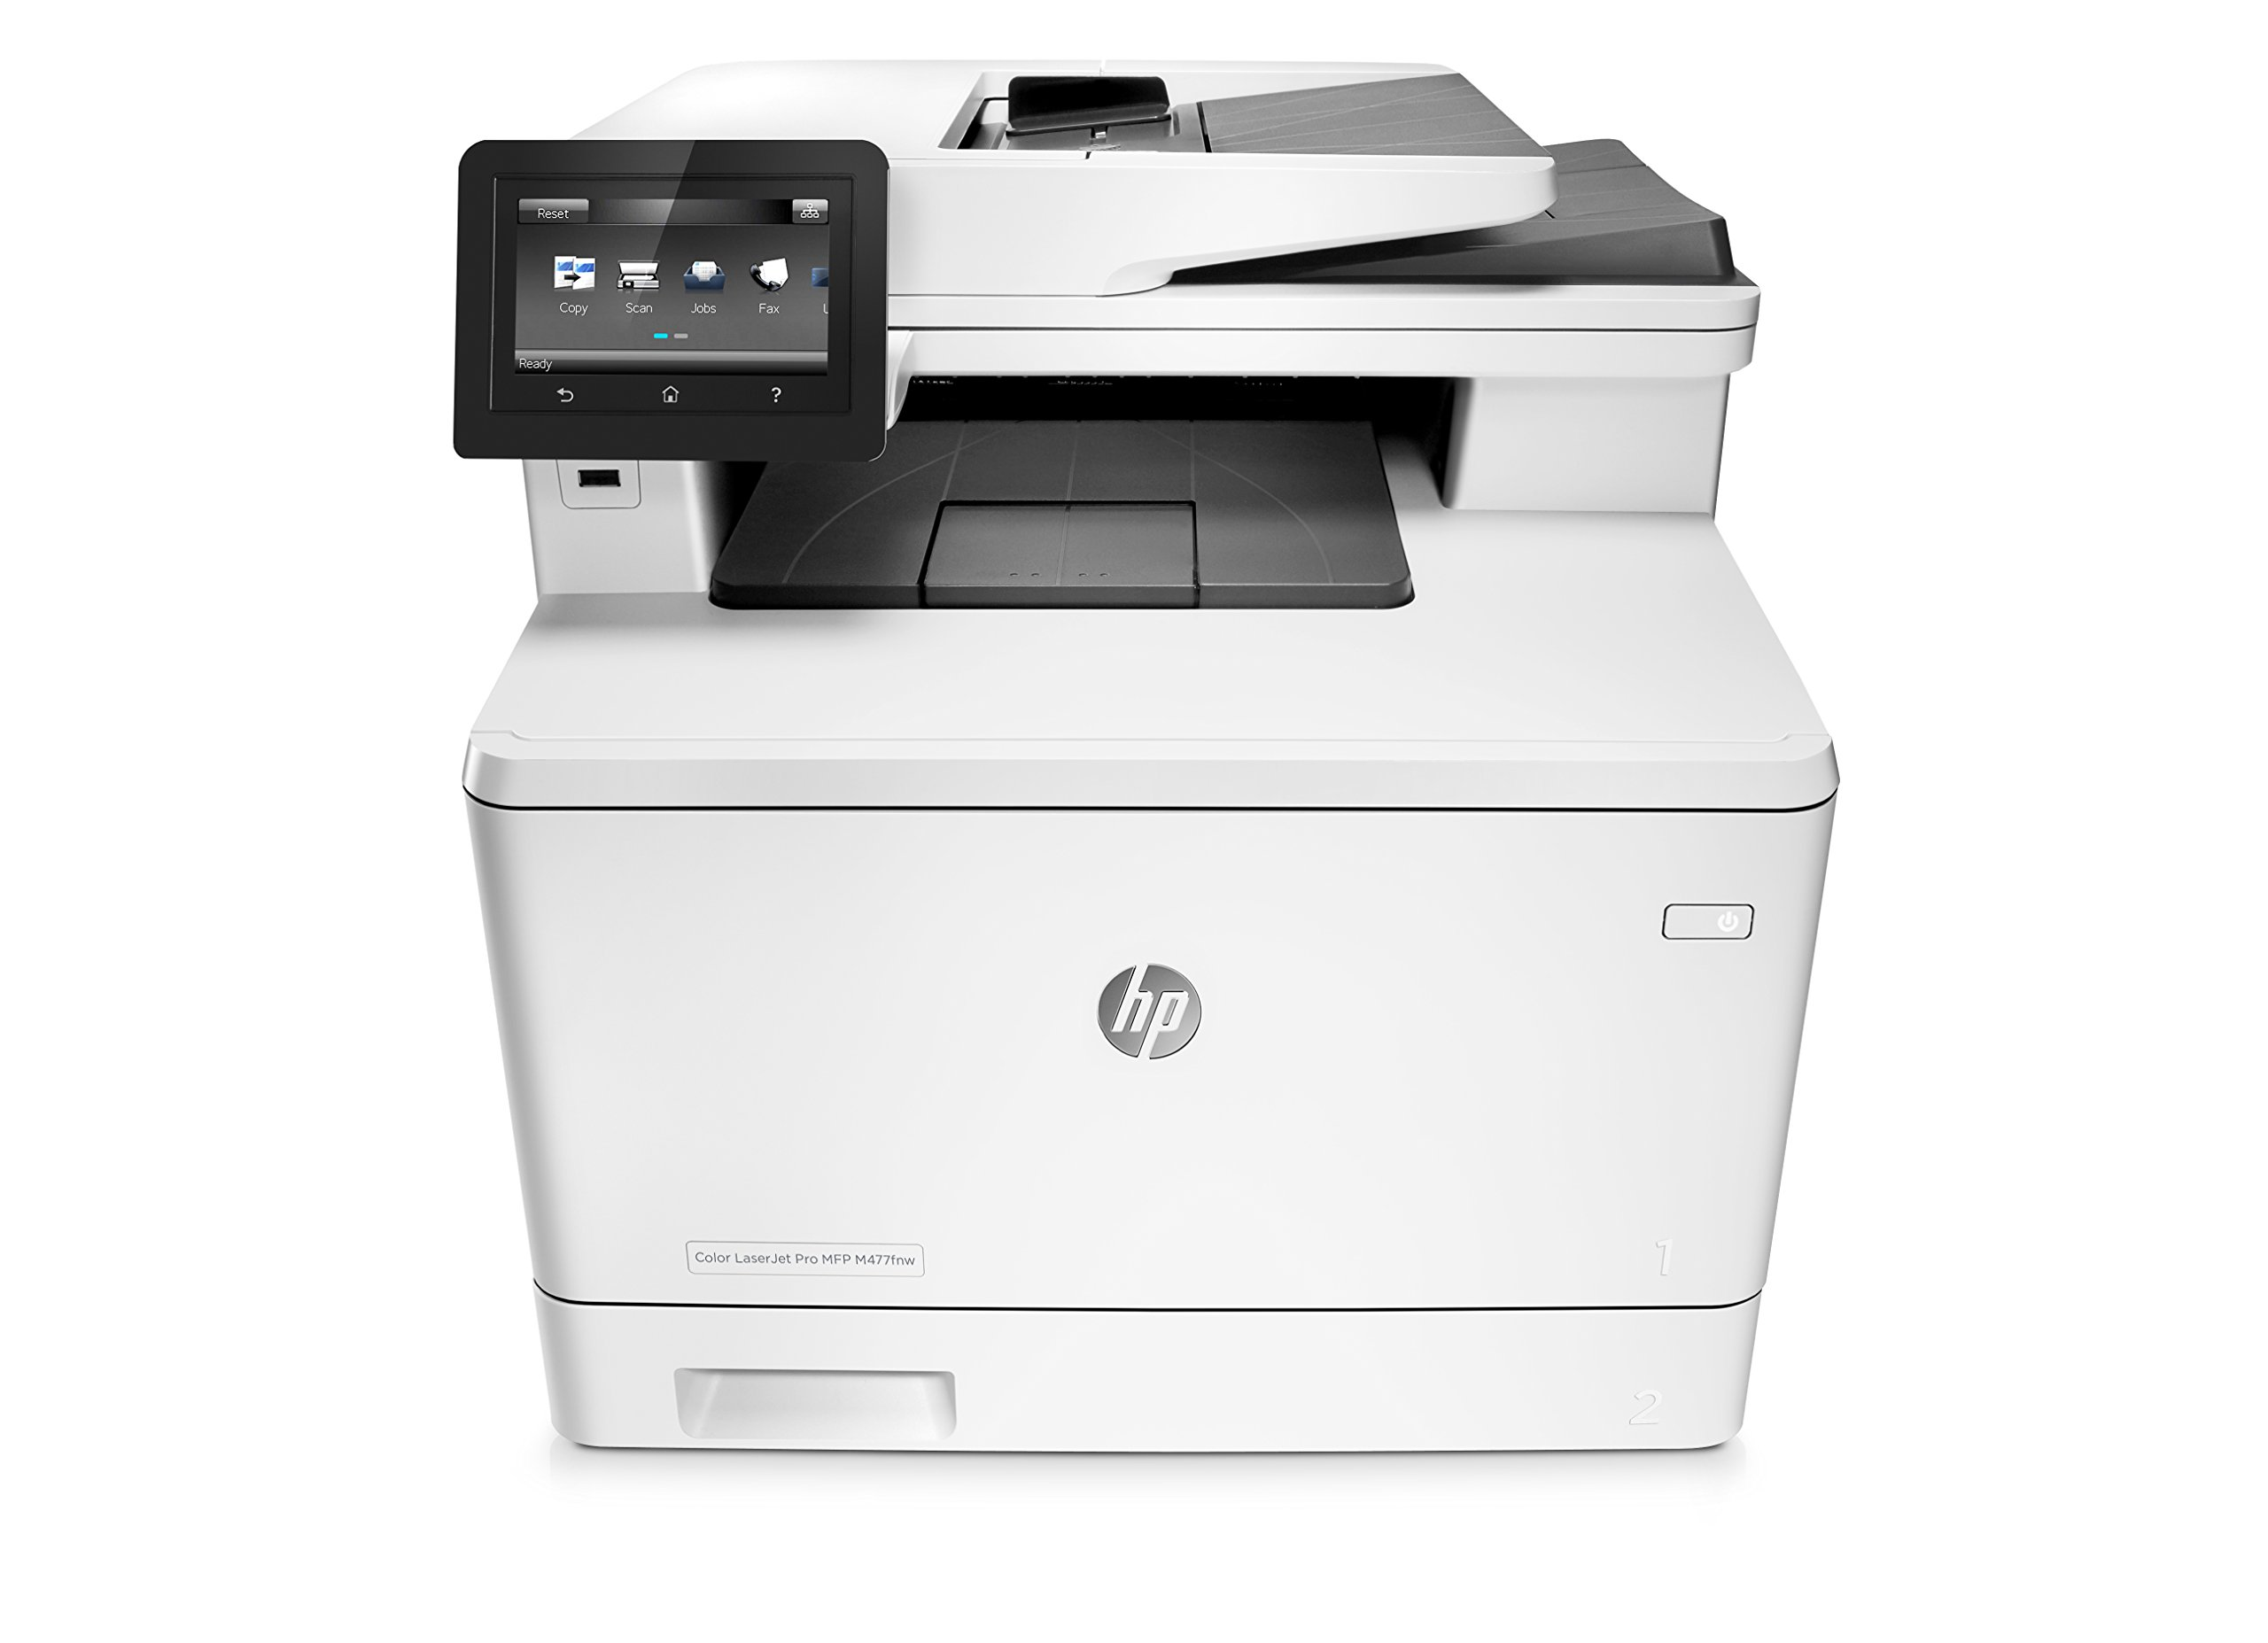 HP LaserJet Pro M477fdw Multifunction Wireless Color Laser Printer with Duplex Printing (CF379A) by HP